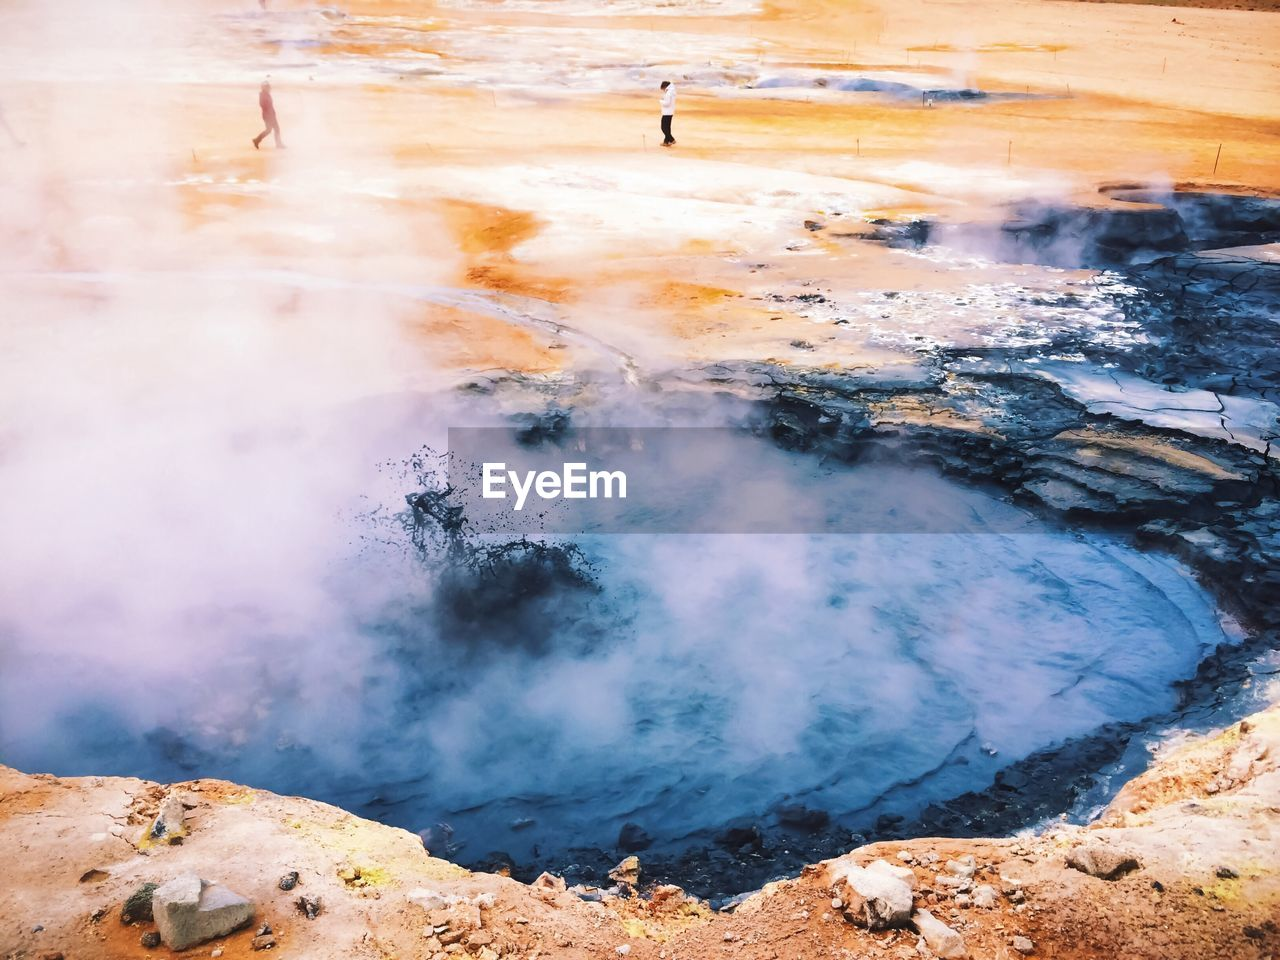 geology, steam, physical geography, heat - temperature, smoke - physical structure, hot spring, power in nature, water, geyser, beauty in nature, day, nature, non-urban scene, landscape, scenics - nature, land, travel, incidental people, tourism, outdoors